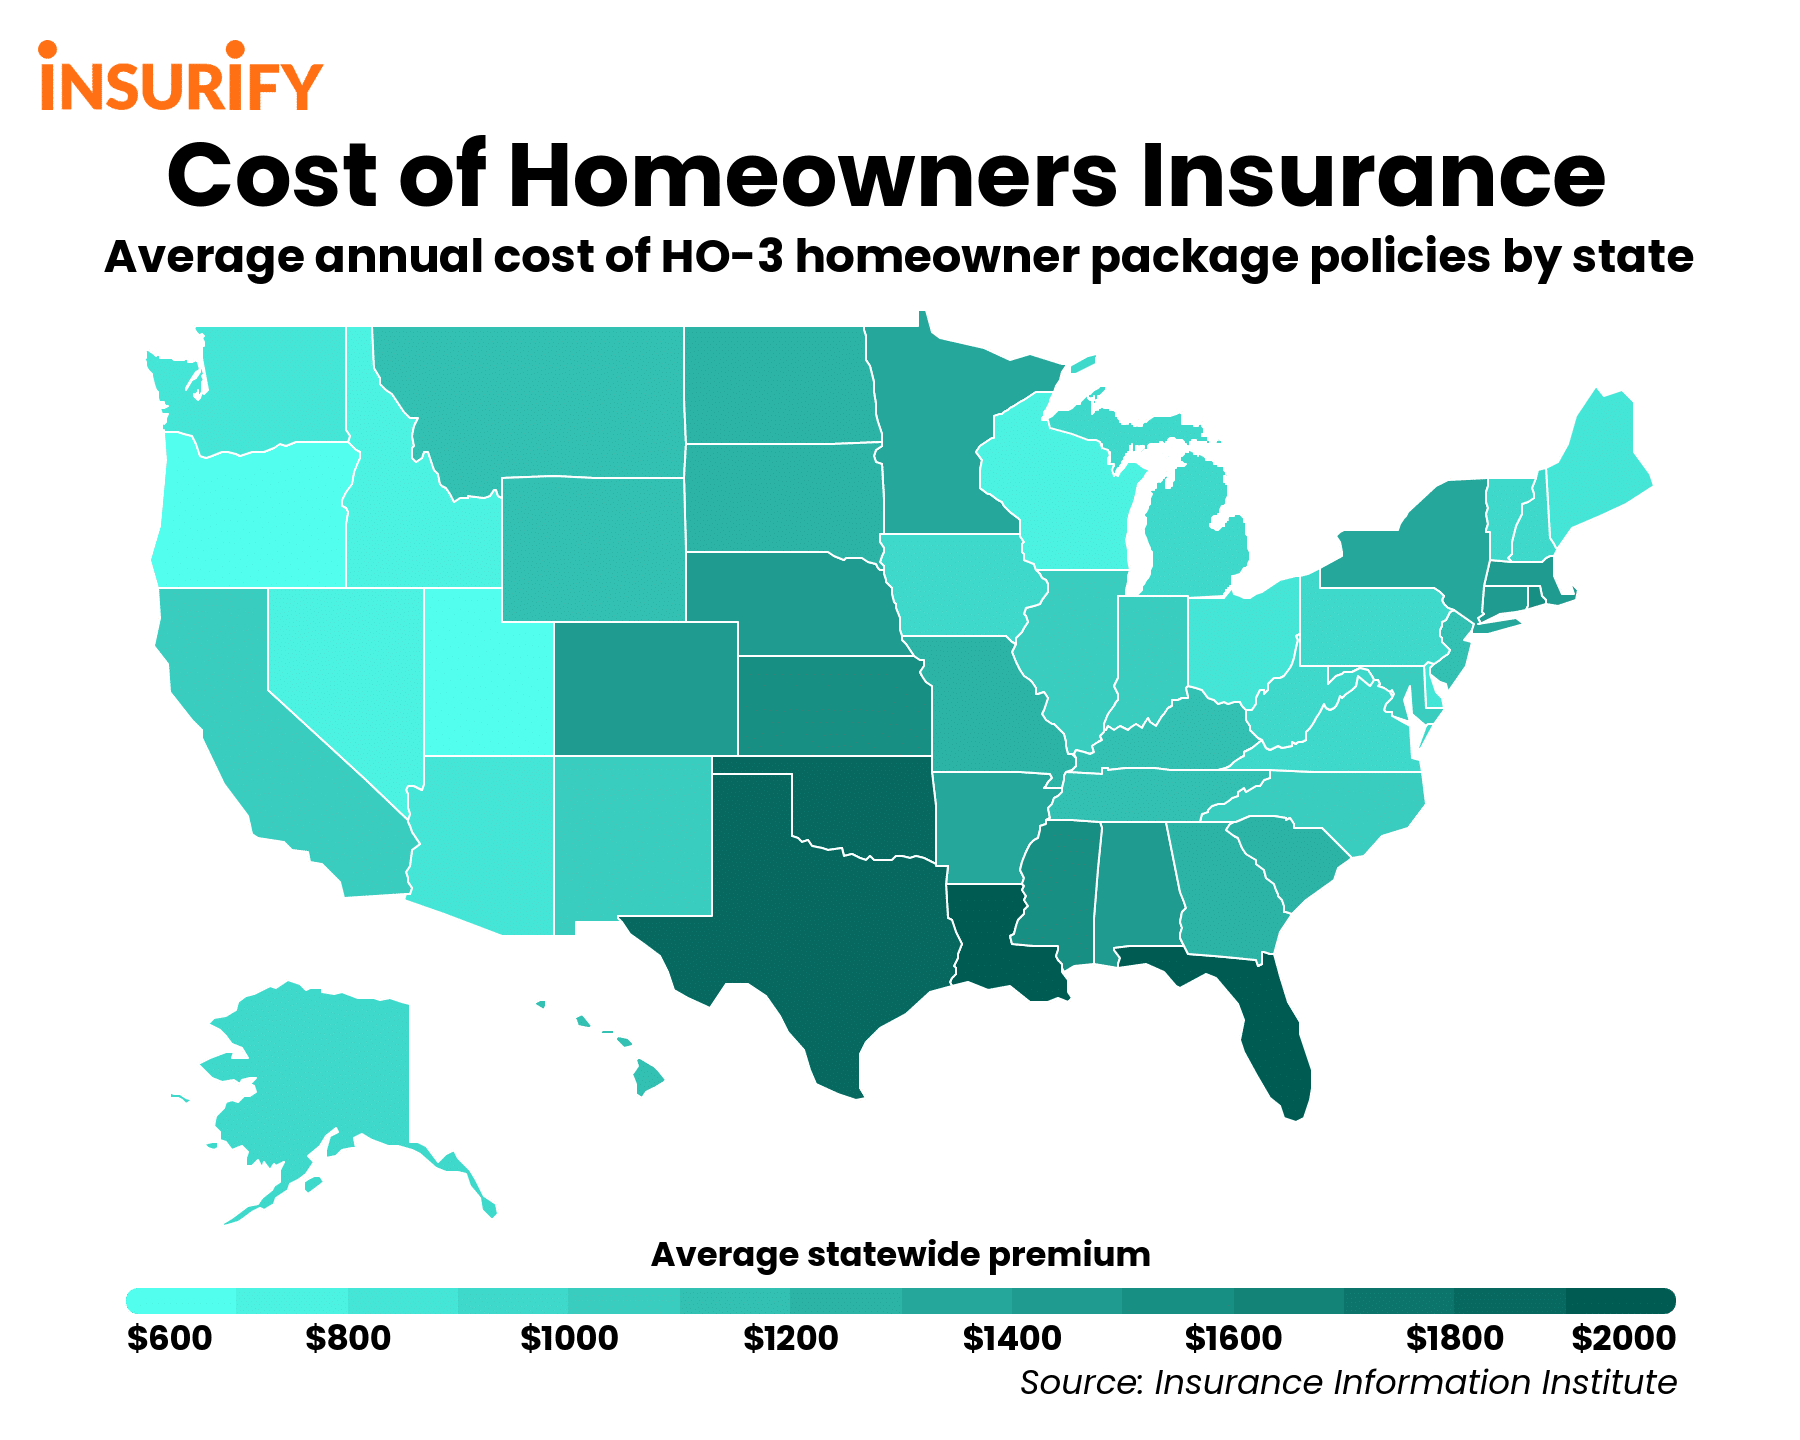 Heat map of the average cost of homeowners insurance by state